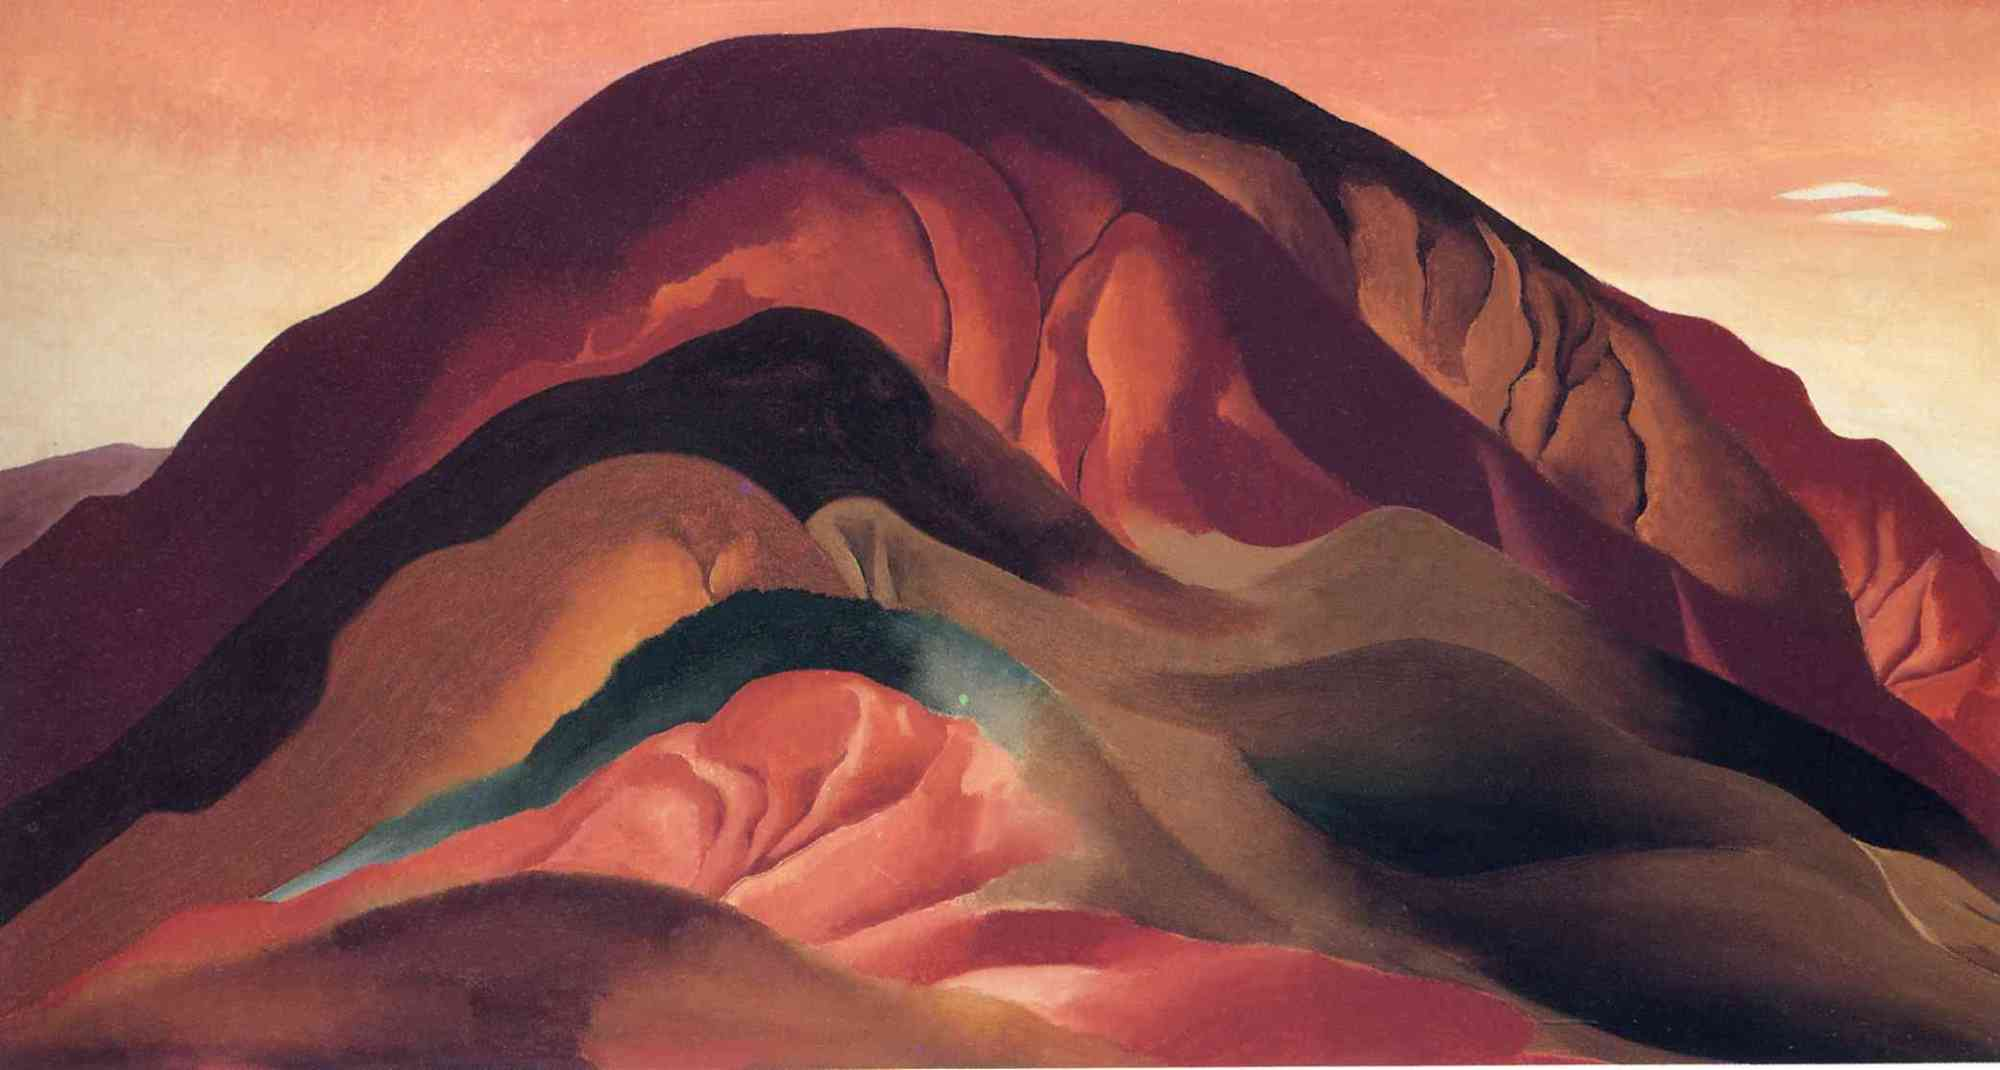 Georgia O'Keeffe, Rust Red Hills (Les Collines rouges), 1930. Huile sur toile, 40 x 76,2 cm. Sloan Fund Purchase. Brauer Museum of Art, Valparaiso. 62.02